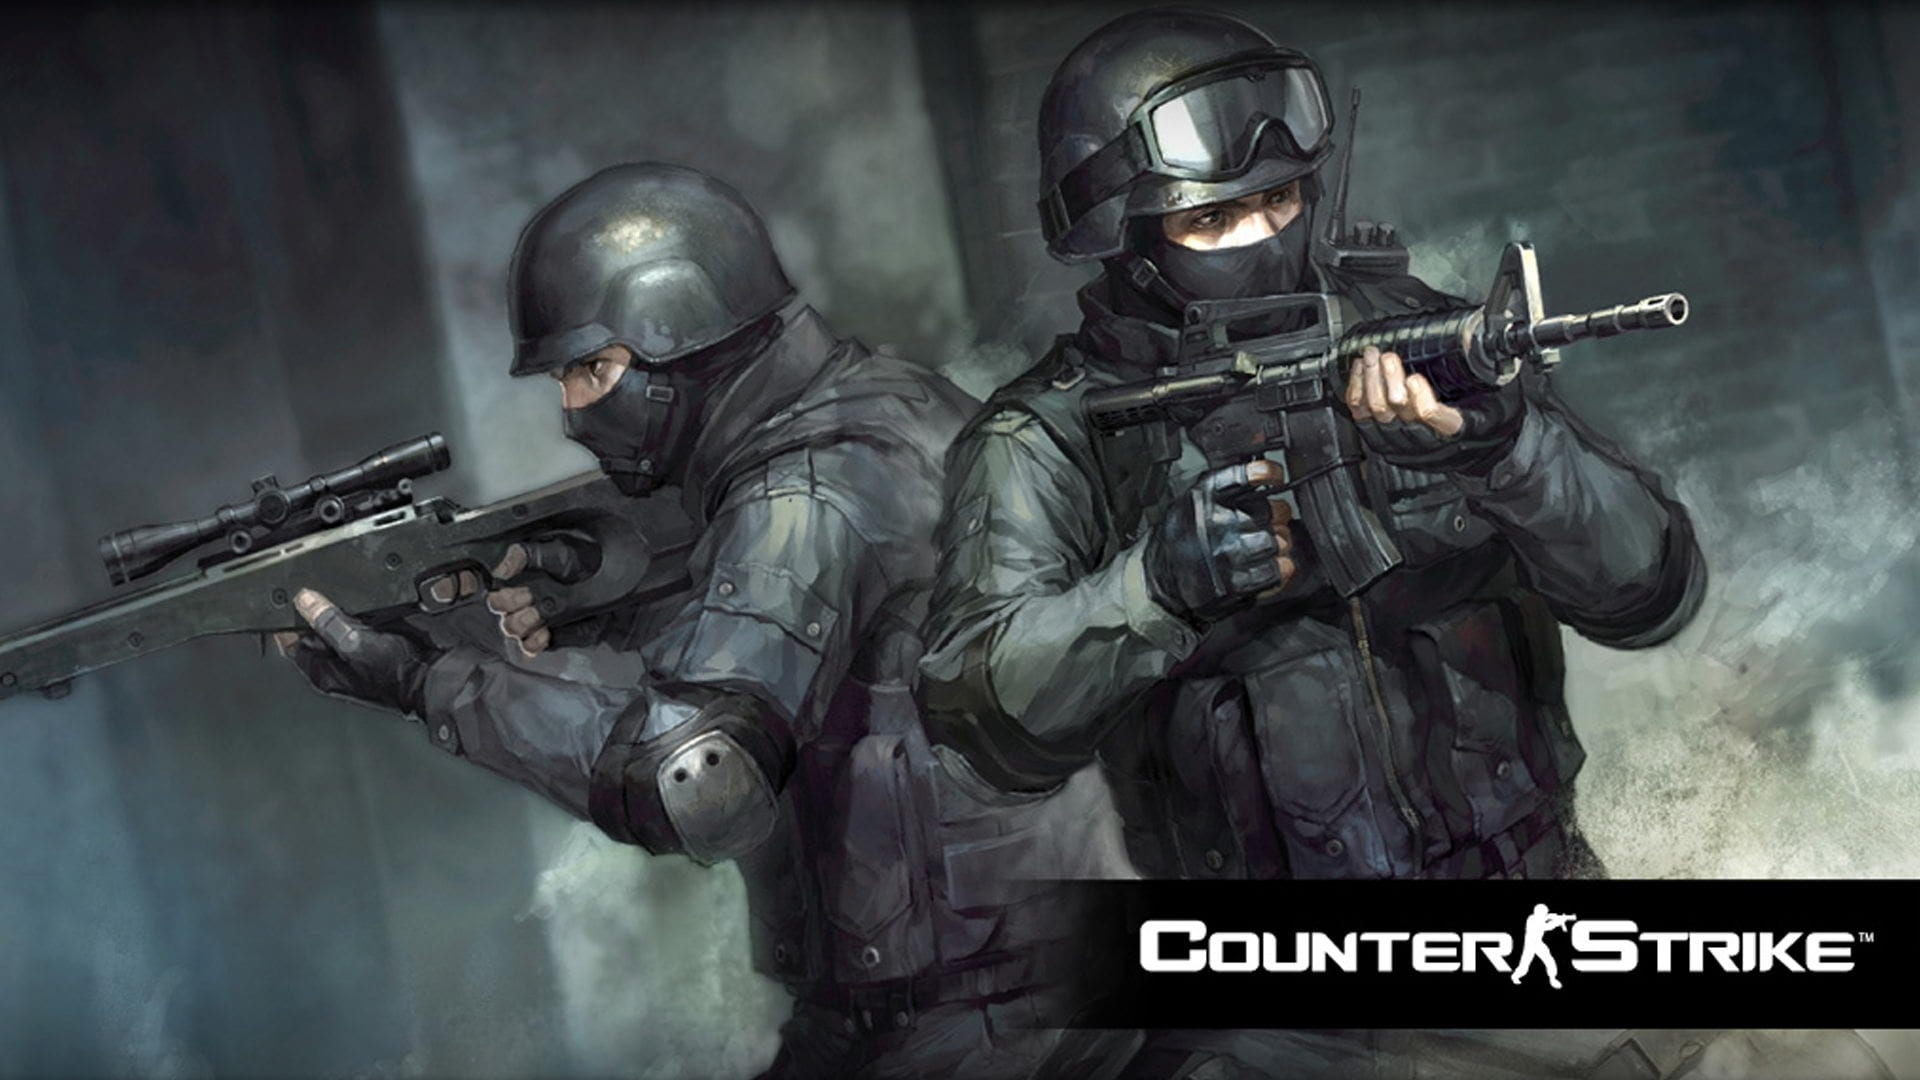 Counter Strike Wallpapers Top Free Counter Strike